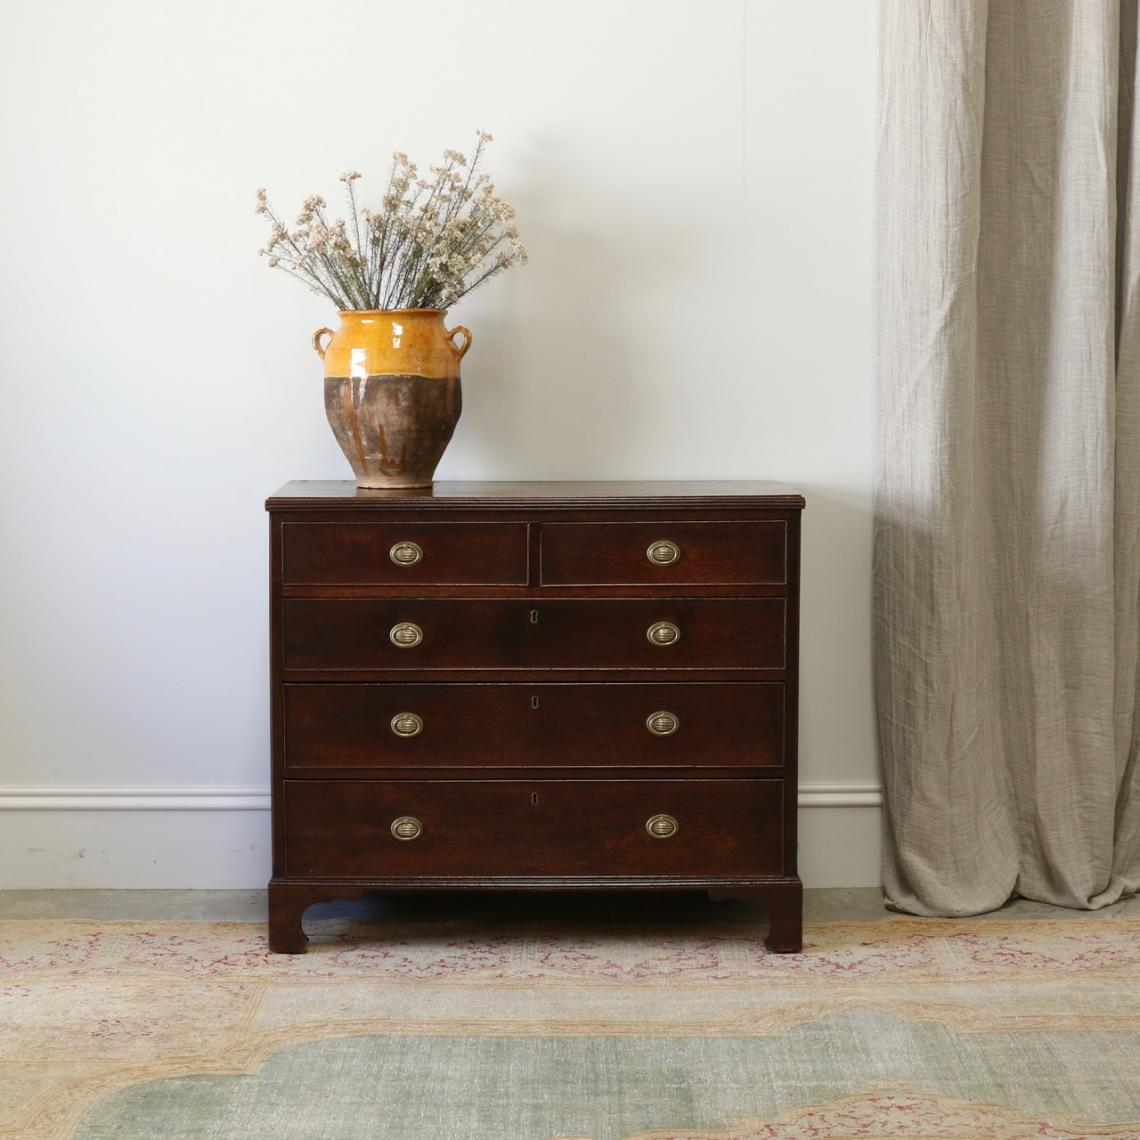 113-68 - Georgian Oak Chest of Drawers